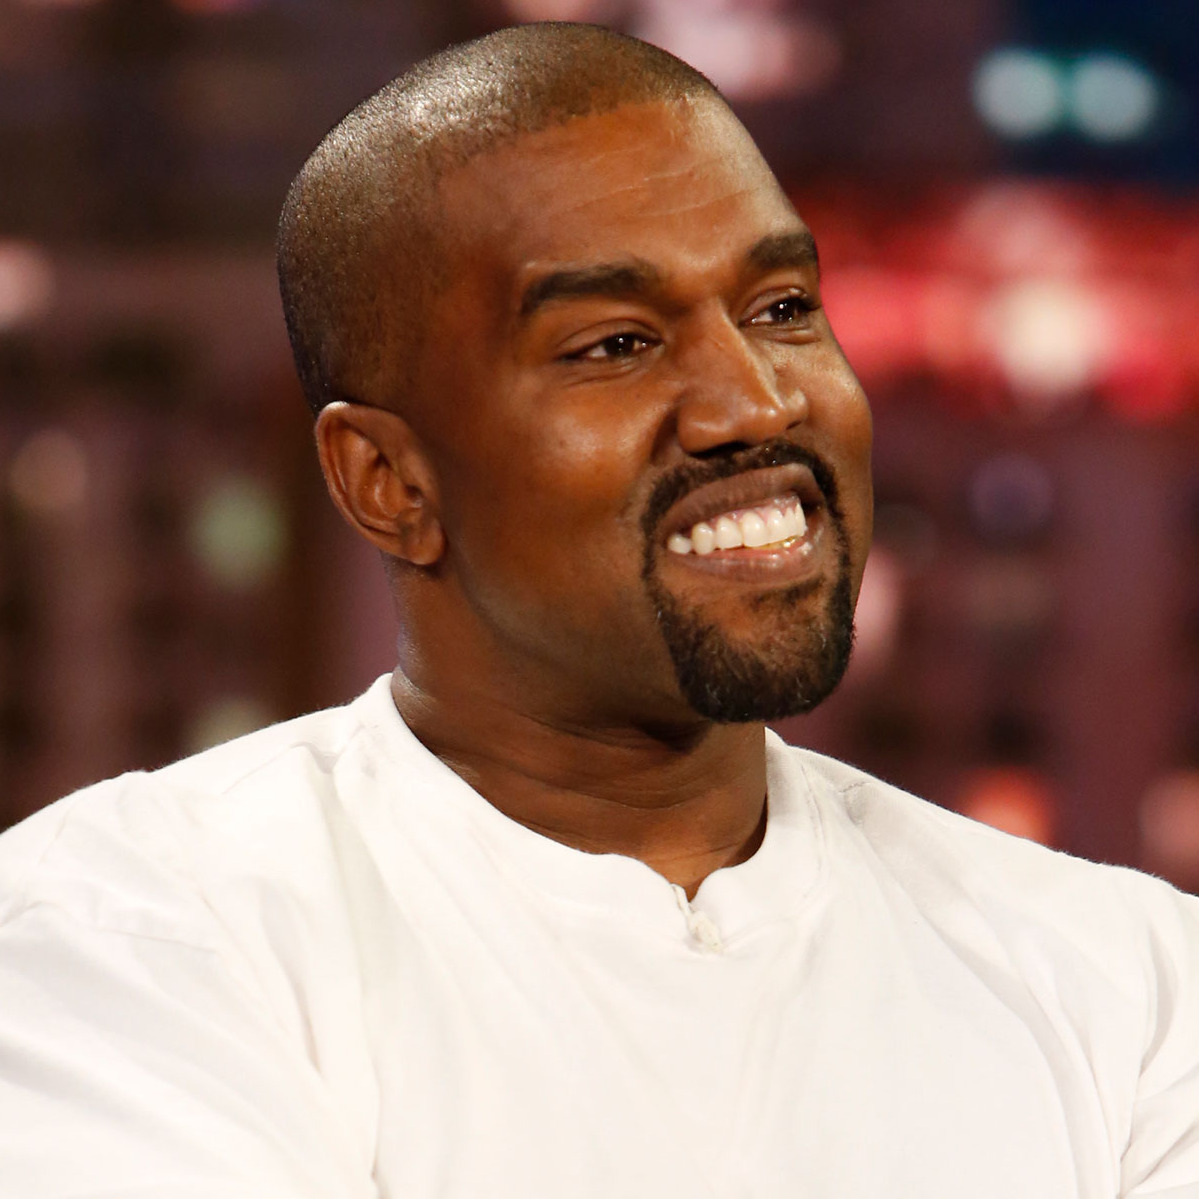 Yeezus 2? Everything We Know About Kanye's Yandhi Album